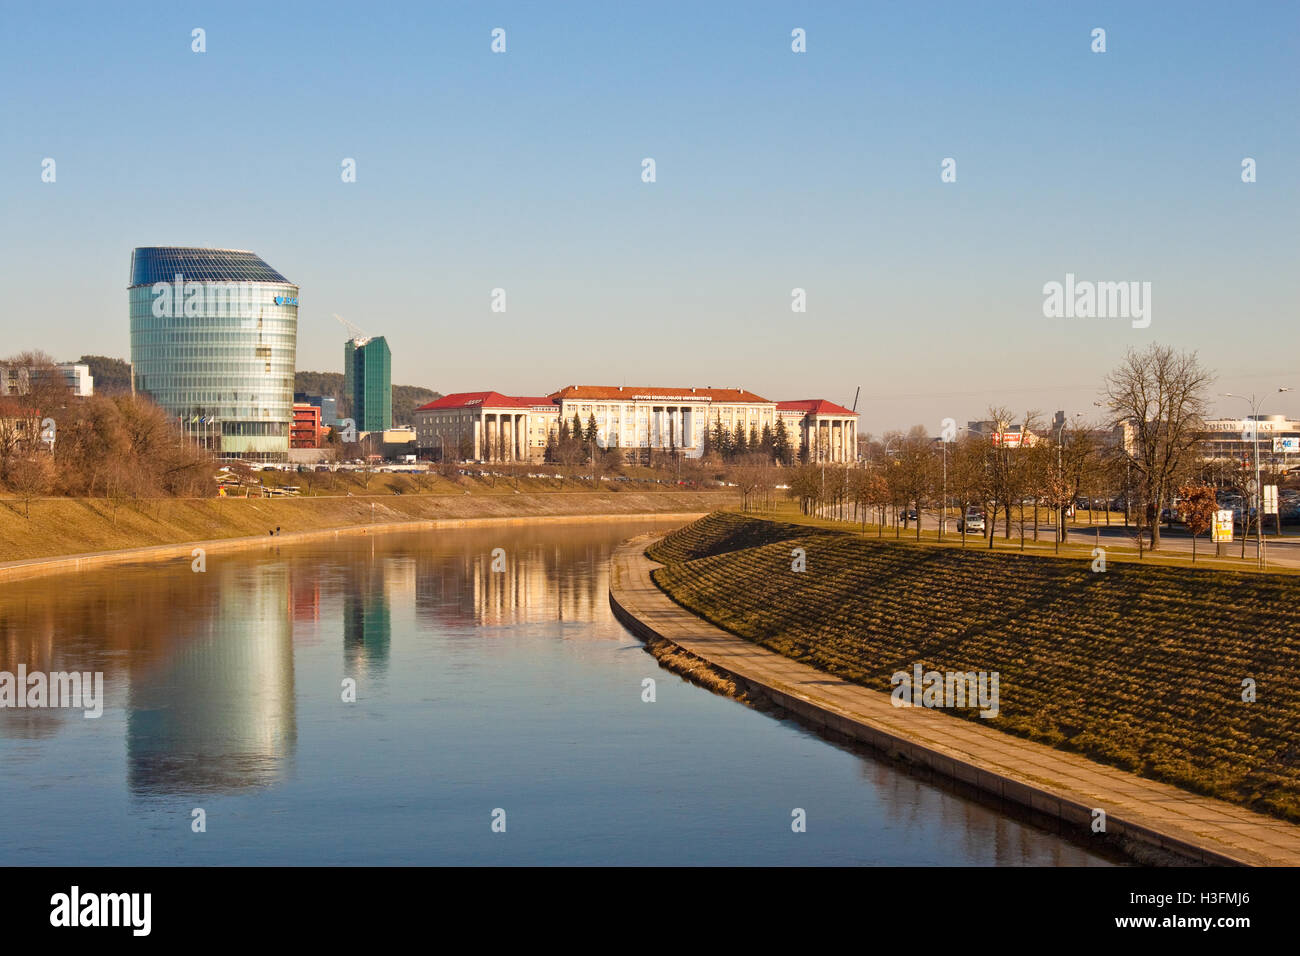 Vilnius, Lithuania - March 16, 2015: Lithuanian University of Educational Sciences and a modern building of Barclays - Stock Image